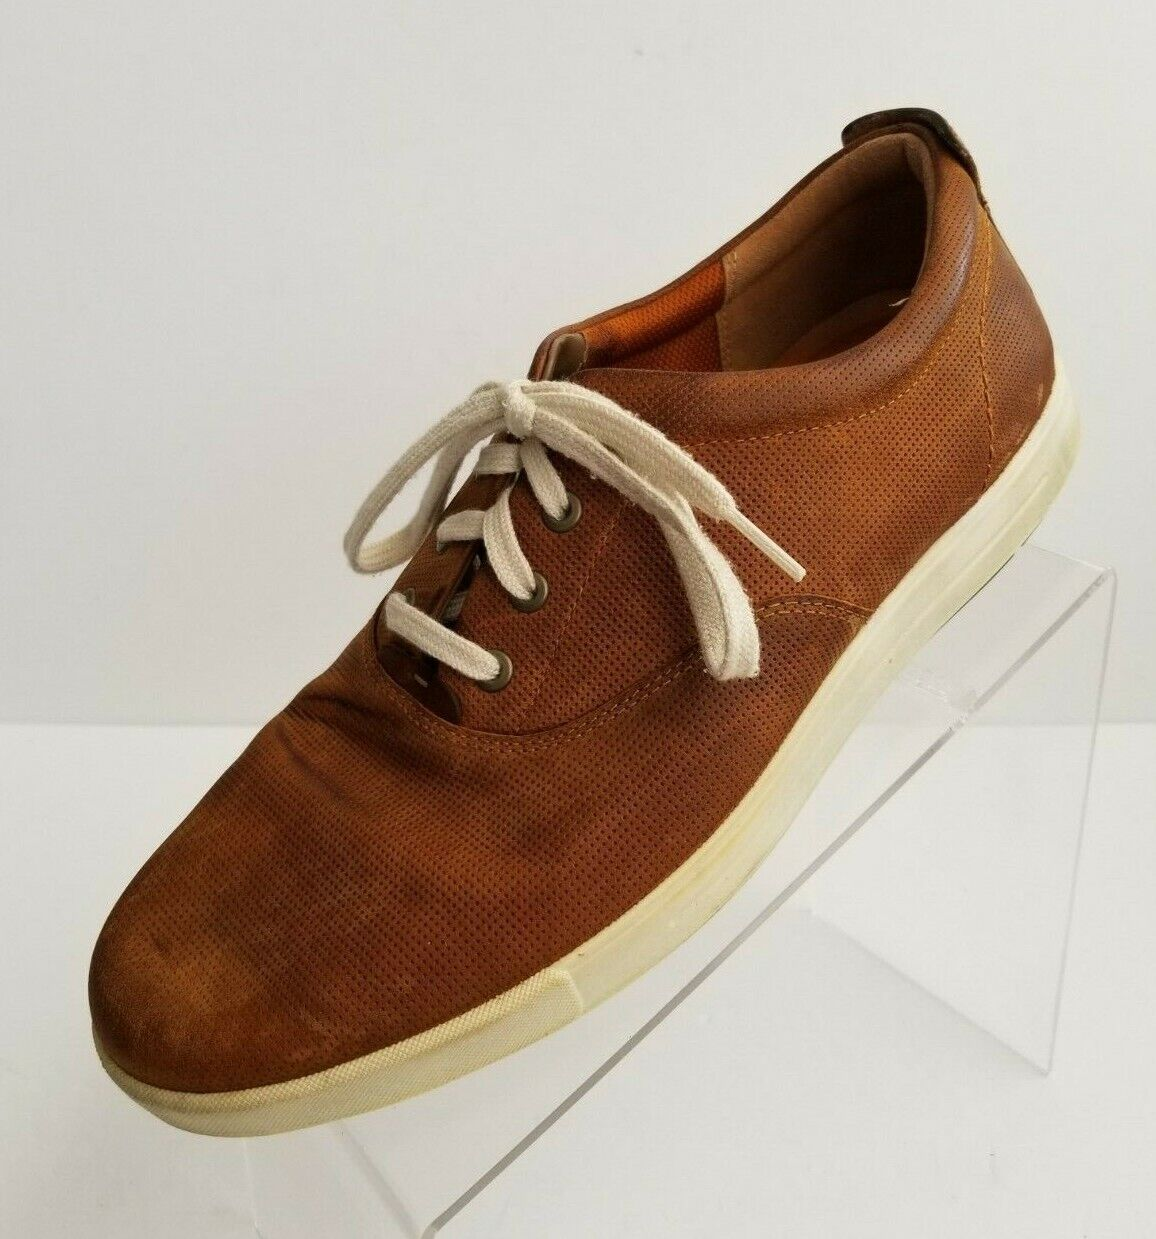 ECCO Mens Sneakers Brown Leather Lace Up Shoes Size EU 44 US 11